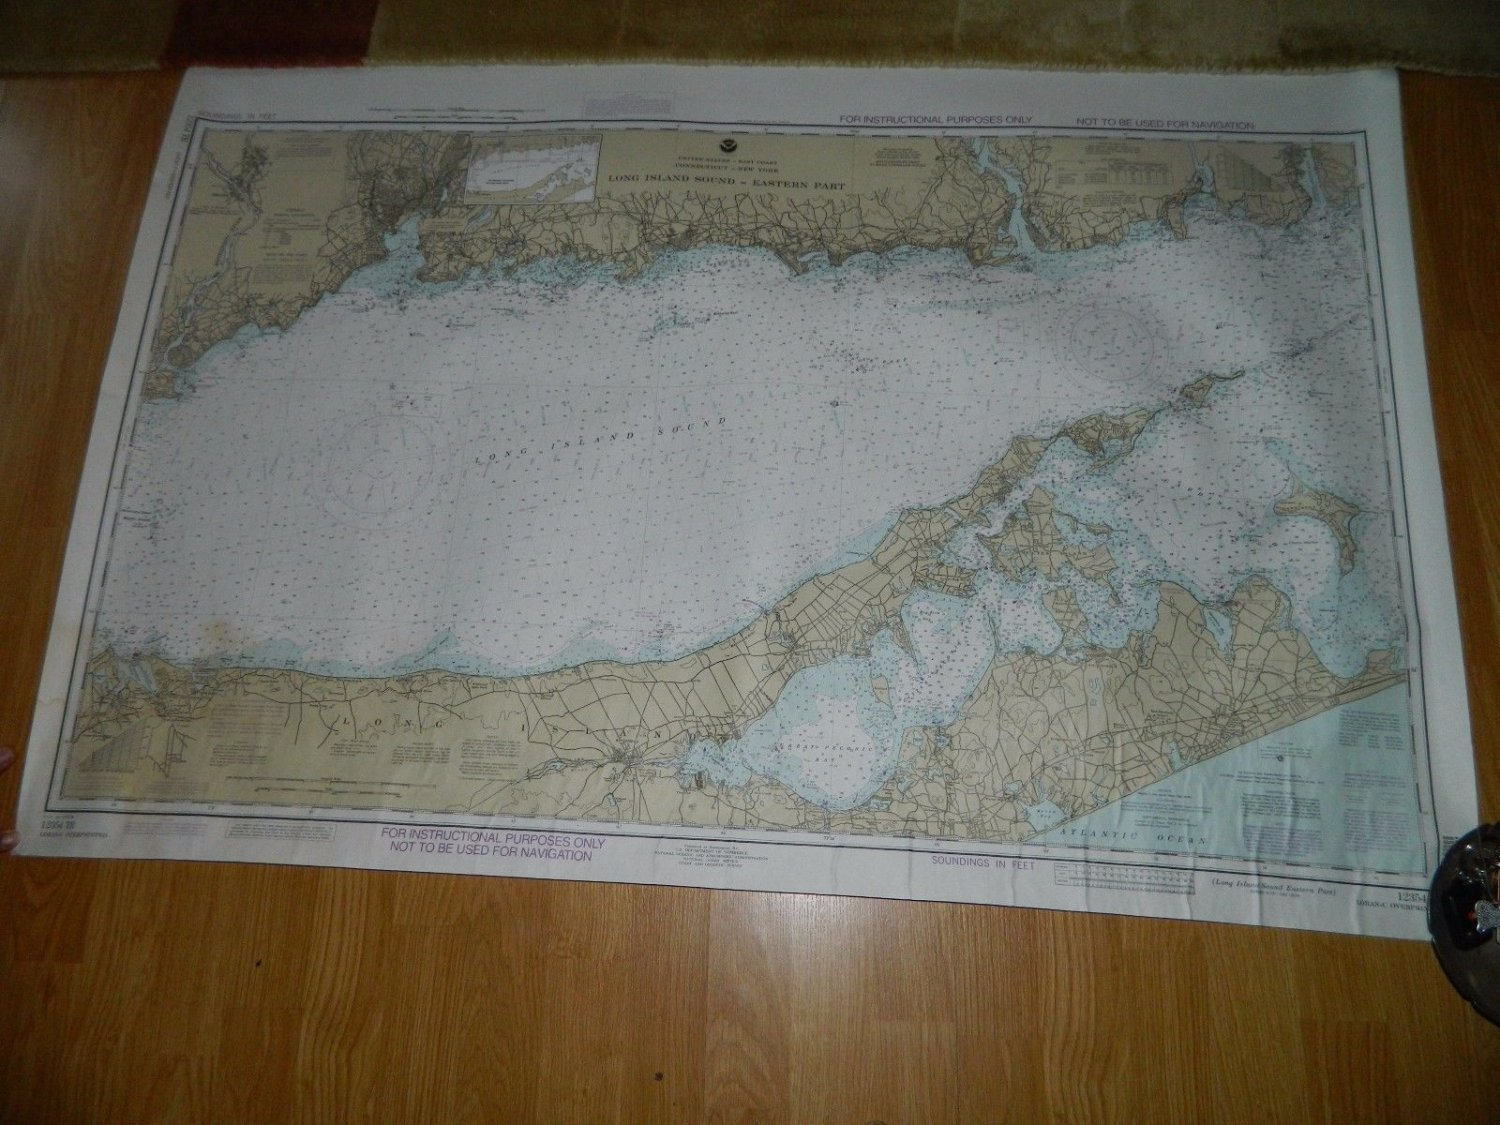 "NOAA Sounding Map - Long Island Sound - 1992  - Nautical - Large 48x32"" - #12354"